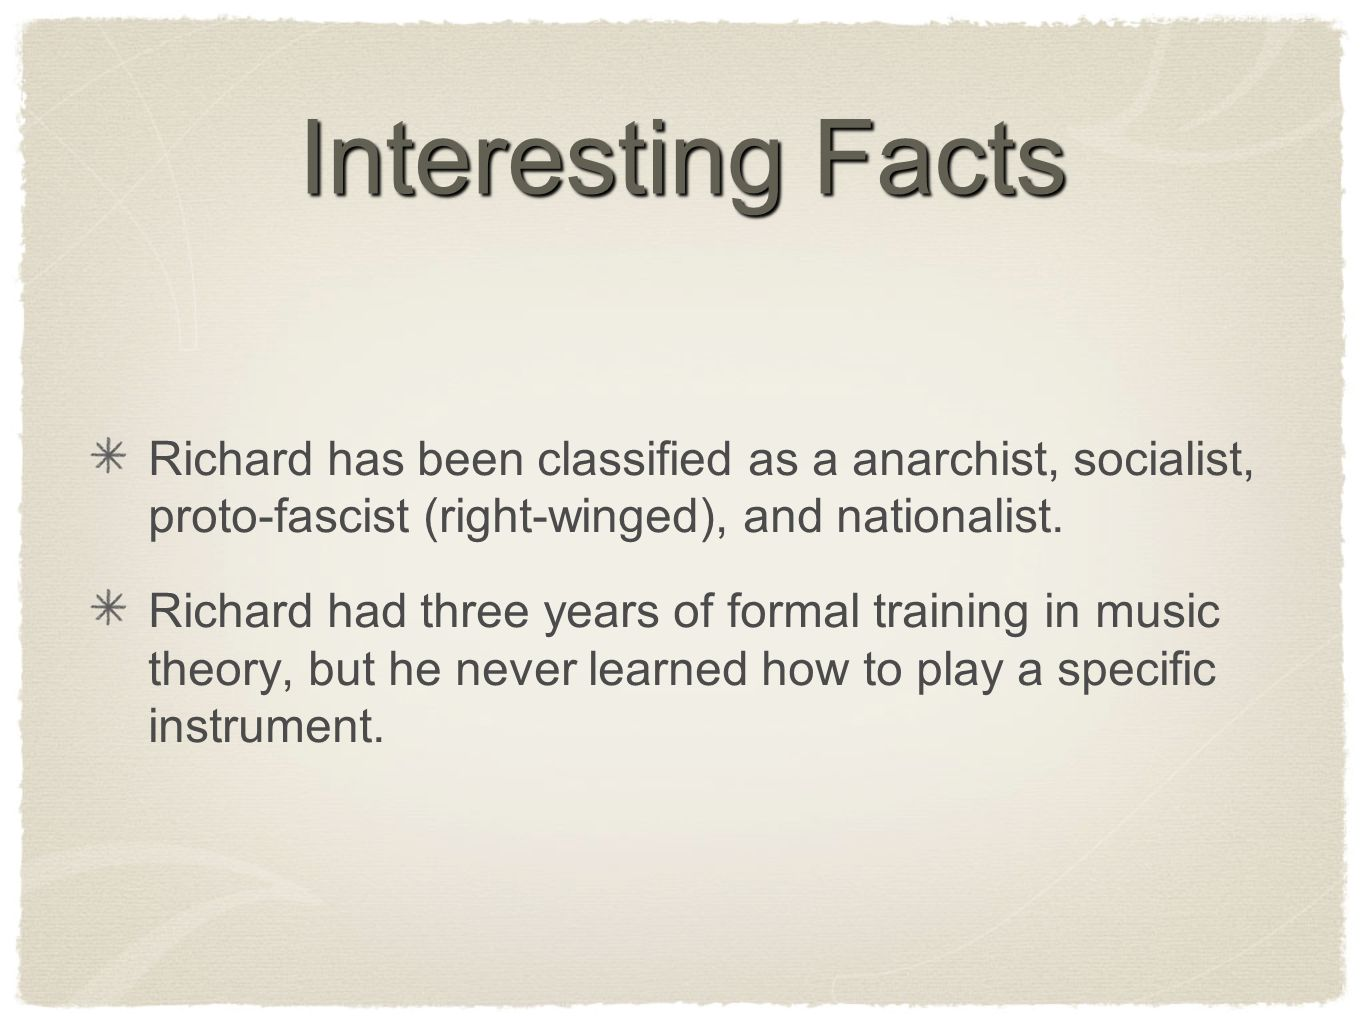 Interesting Facts Richard has been classified as a anarchist, socialist, proto-fascist (right-winged), and nationalist.